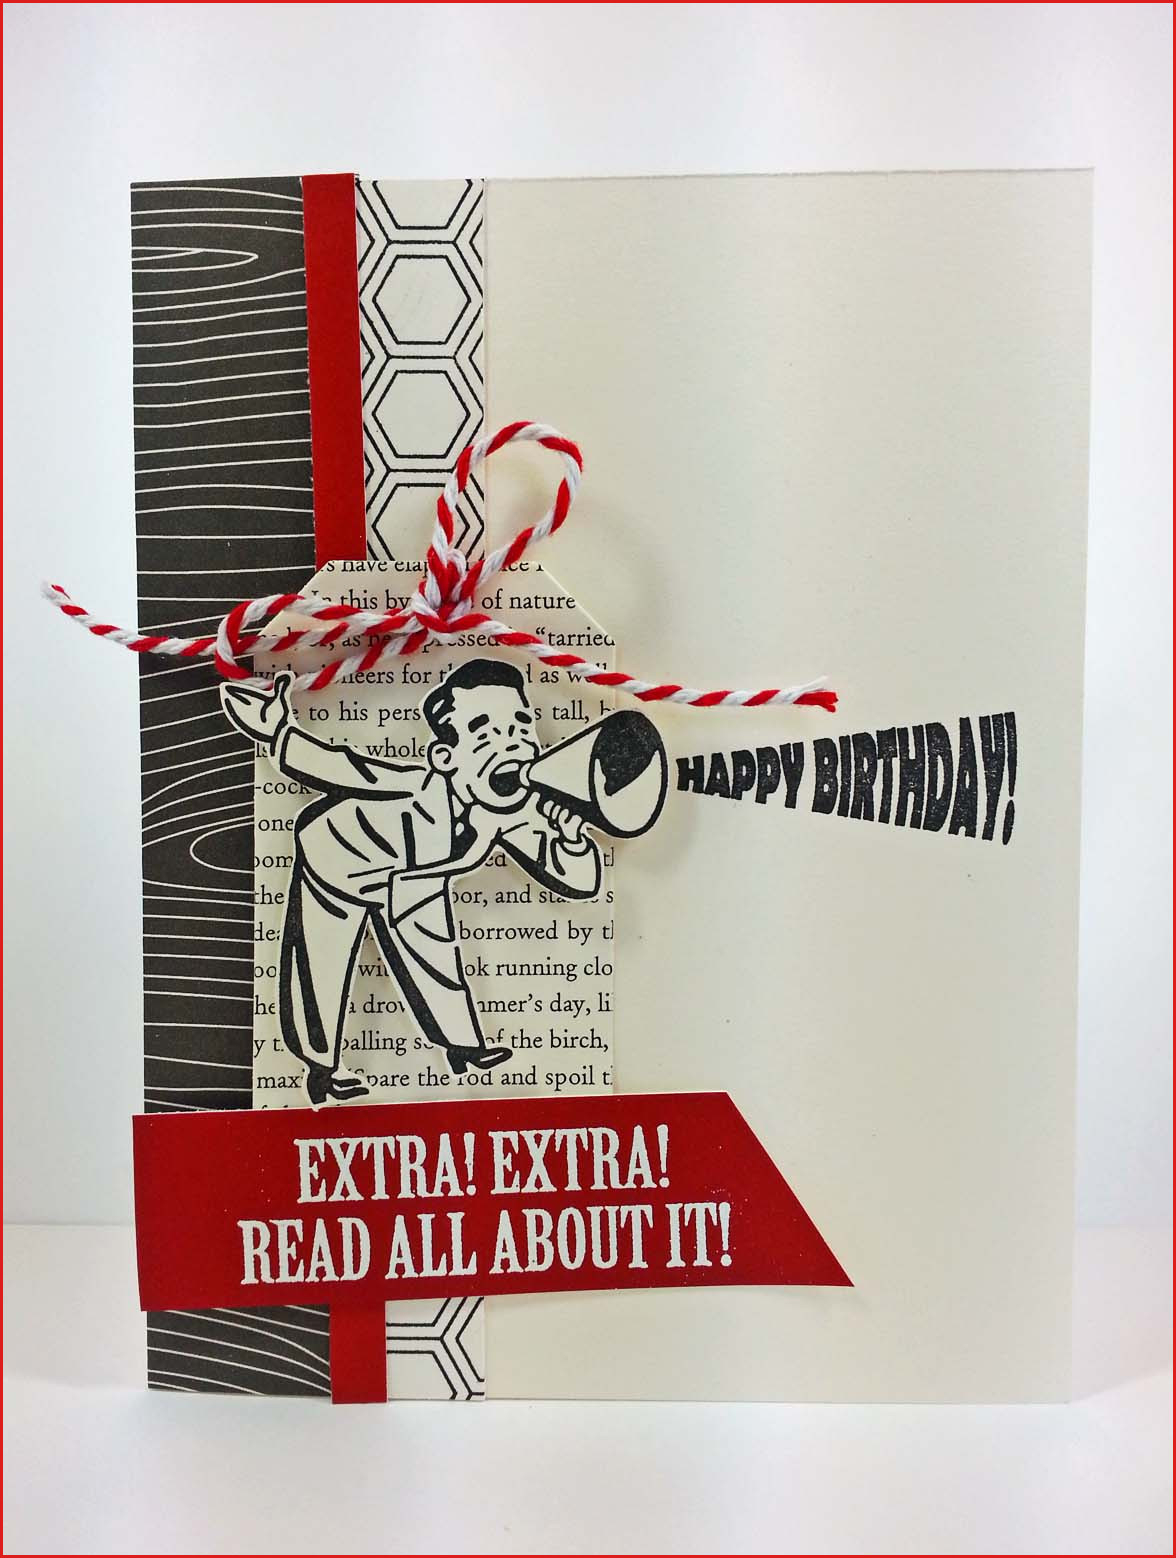 Cool Birthday Card Ideas 37 Homemade Birthday Card Ideas And Images Good Morning Cool